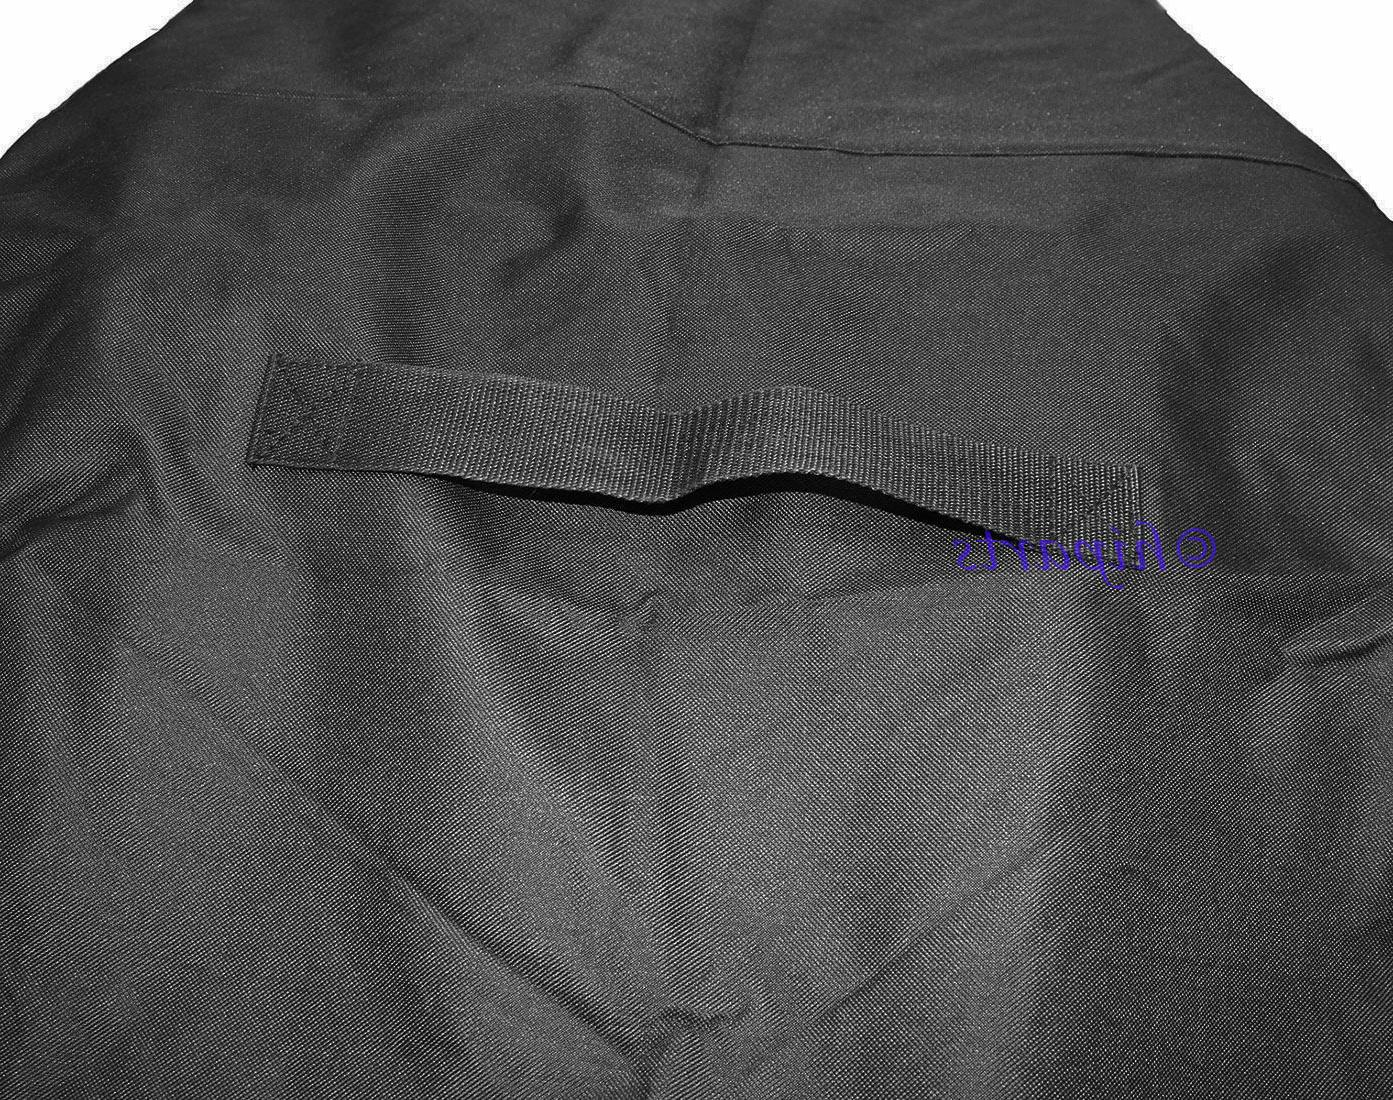 Grill Cover Barbecue Heavy Duty Waterproof